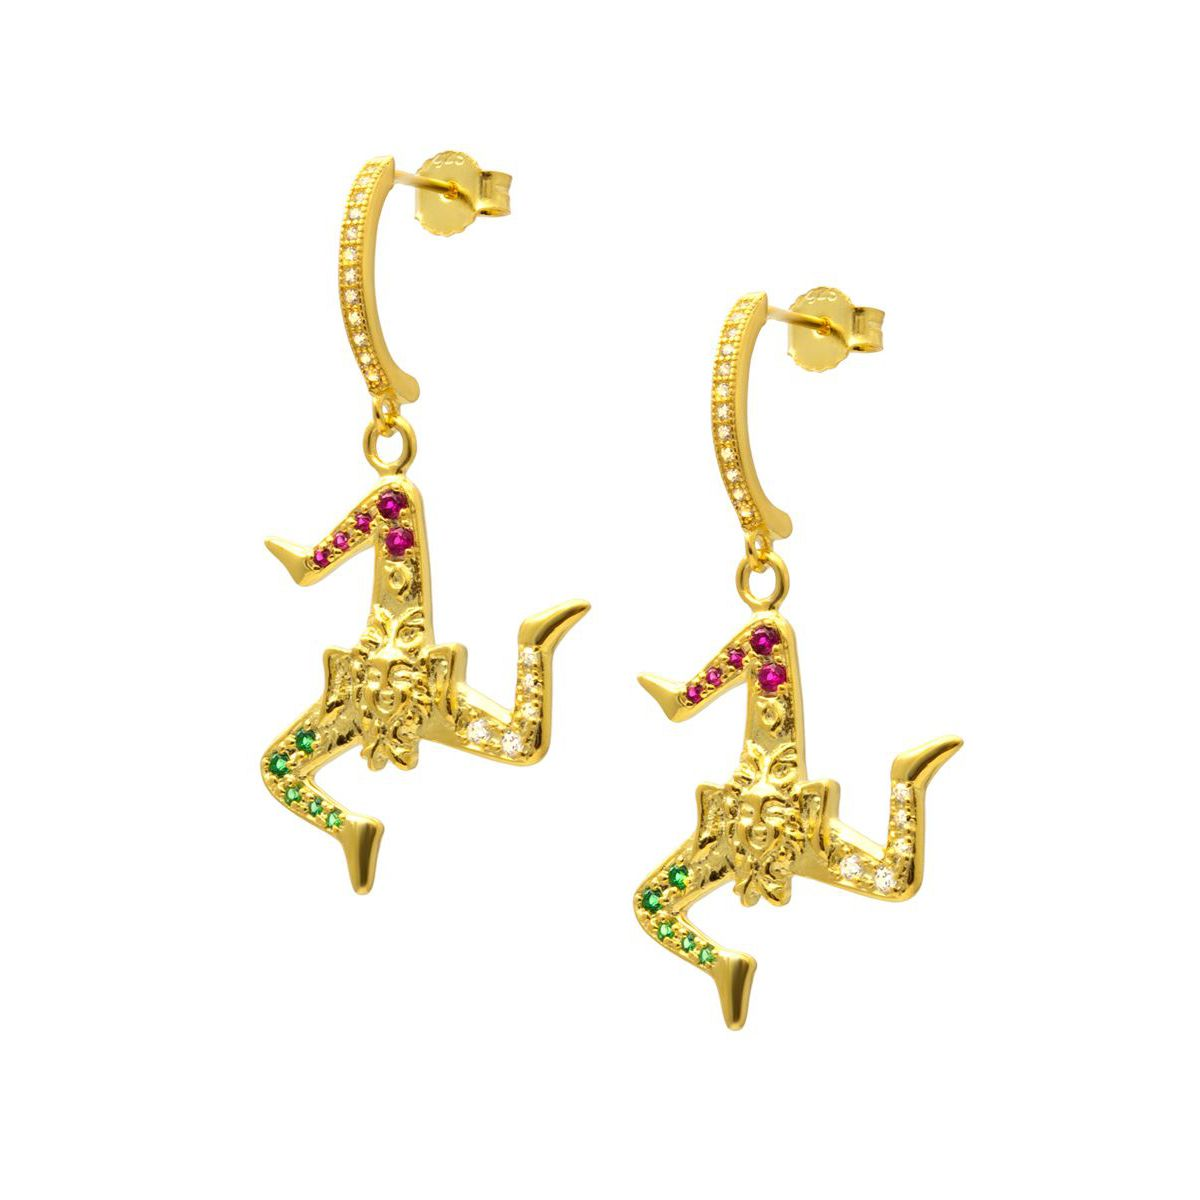 TRINACRIA PENDANT EARRINGS Gold M'AMI SICILY JEWELS